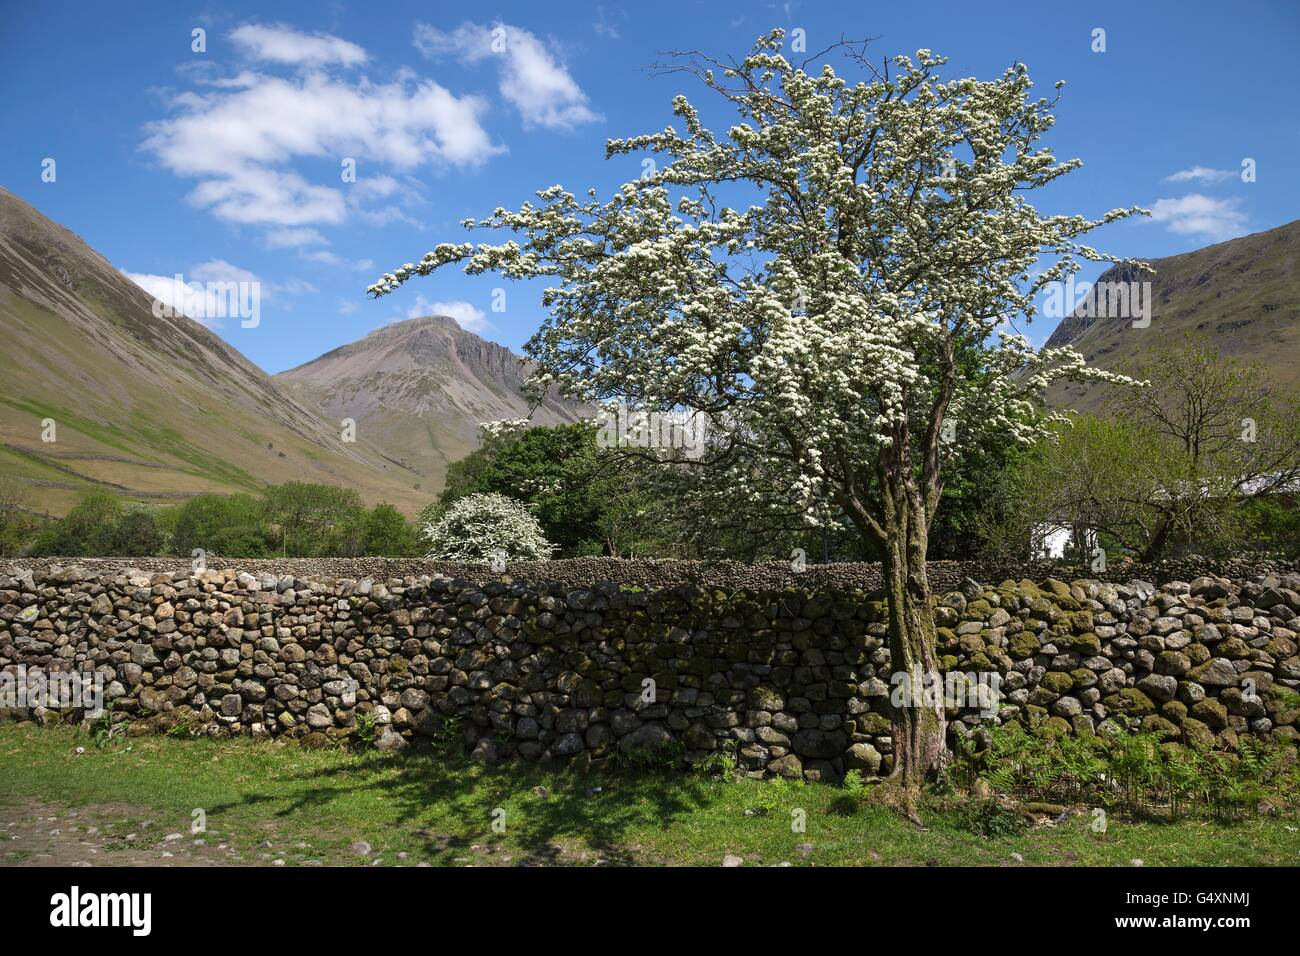 Hawthorn Tree, Wasdale Head, Wast Water, Lake District, Cumbria, England - Stock Image